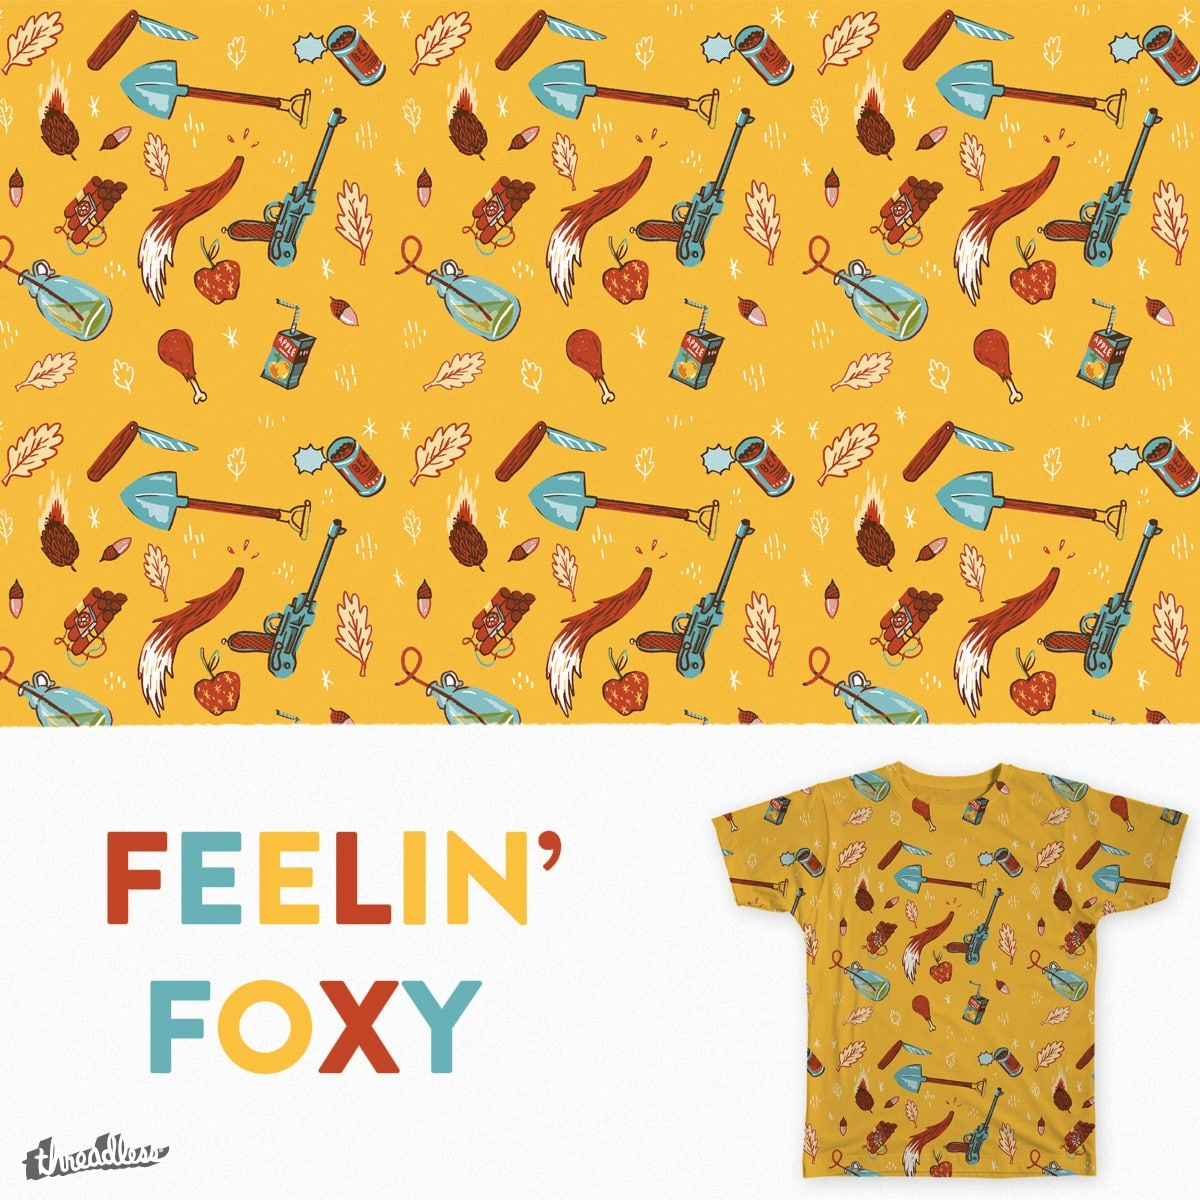 Feelin' Foxy by Anloma on Threadless